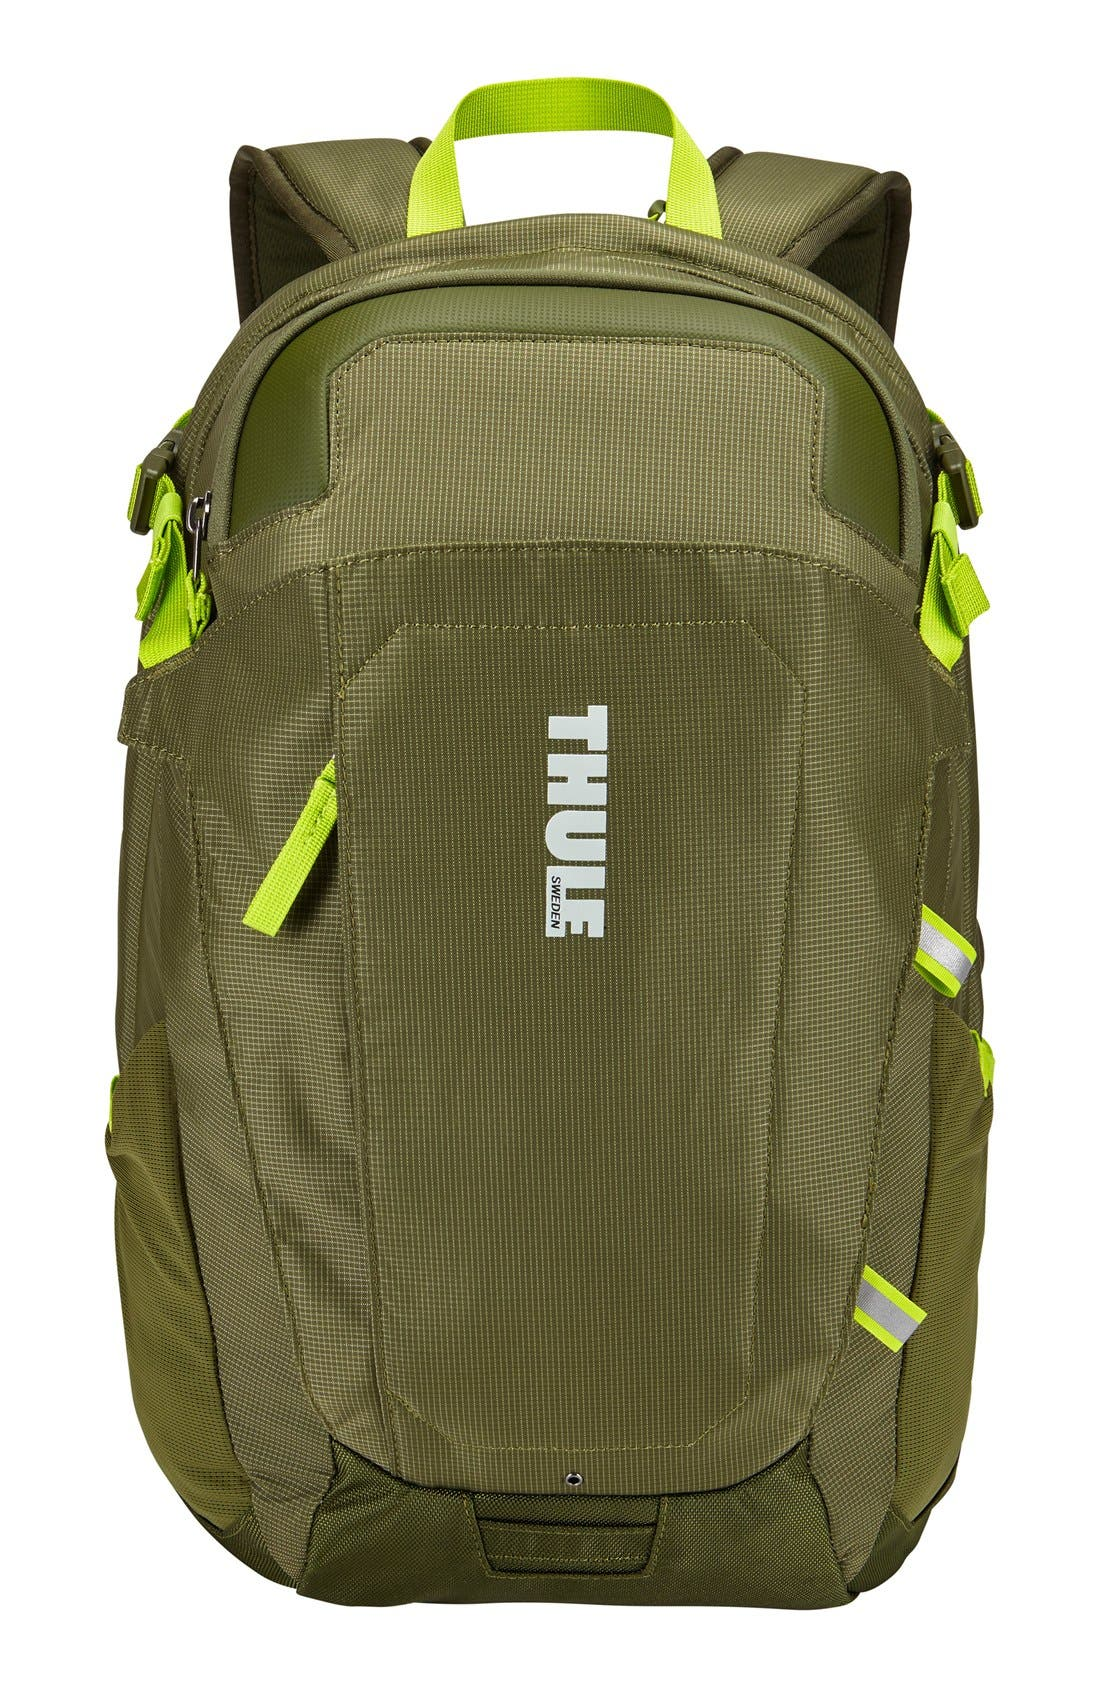 EnRoute Triumph 21-Liter Backpack,                             Main thumbnail 1, color,                             340